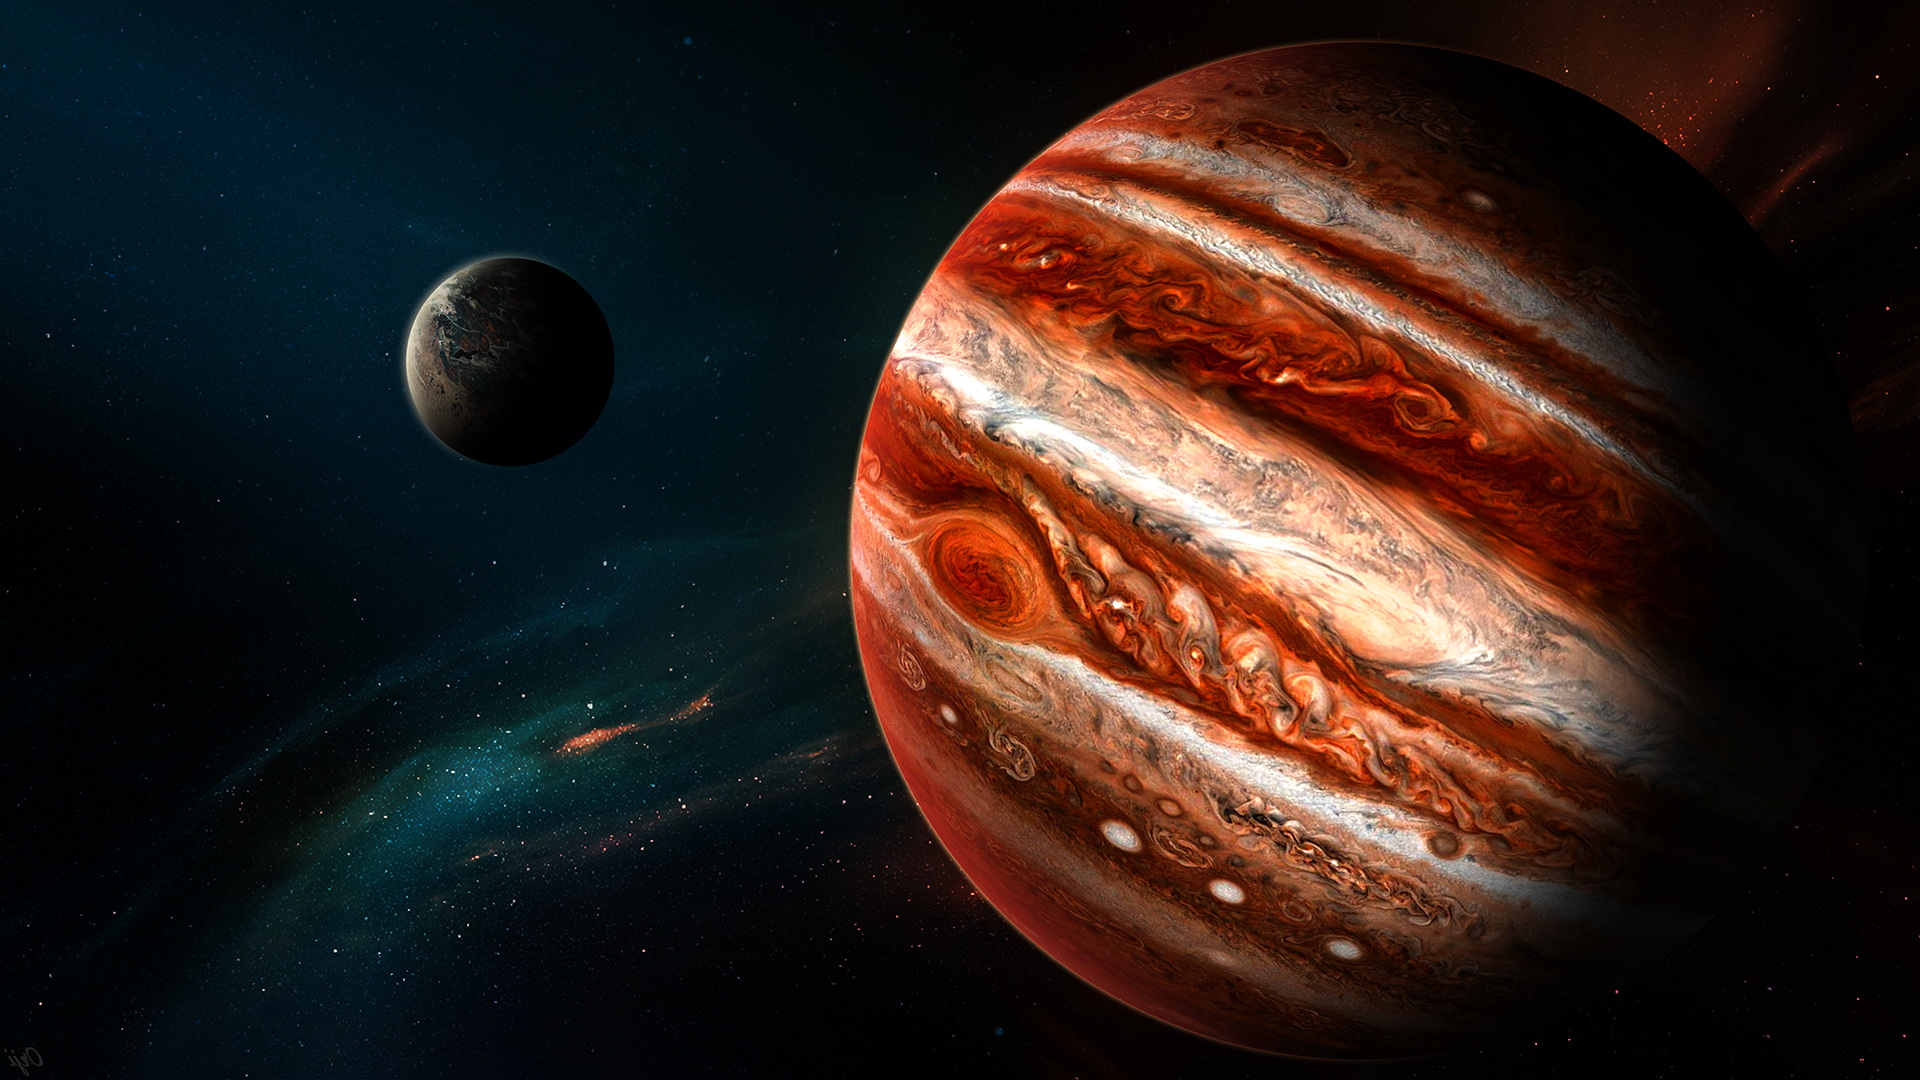 Download fantasy Art Space Planet Jupiter Space Art Wallpapers 1920x1080